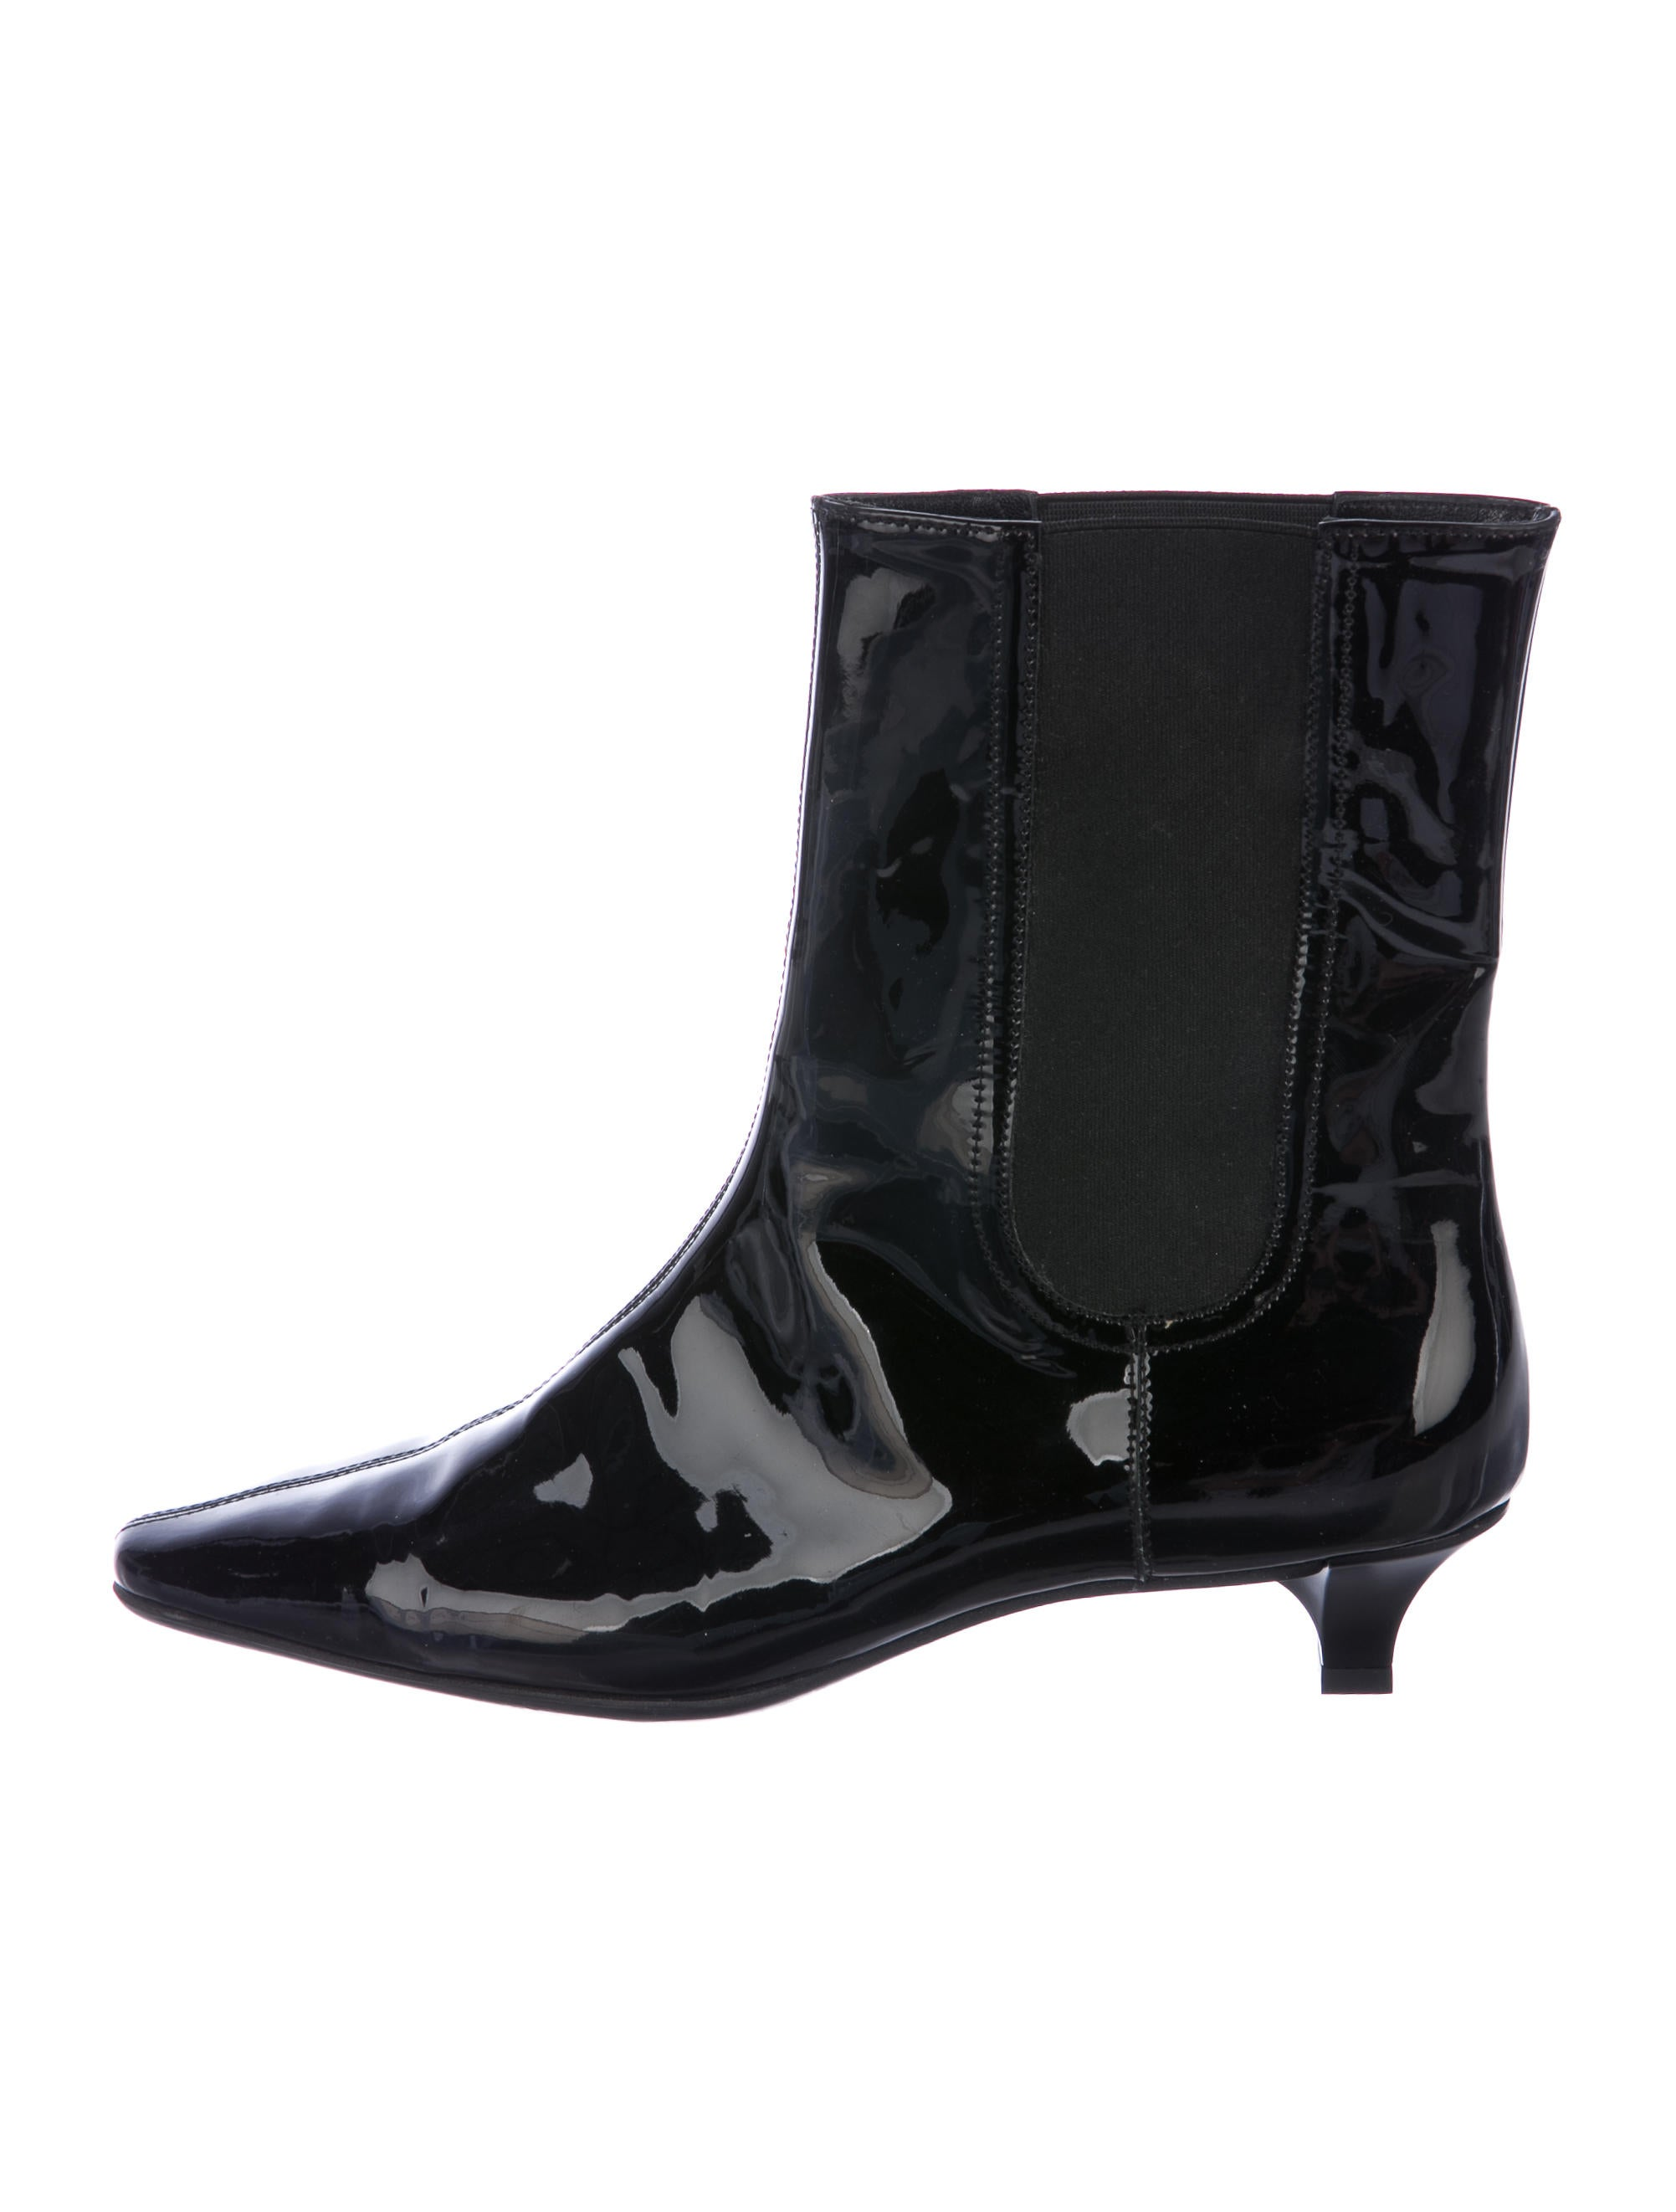 Salvatore Ferragamo Round-Toe Leather Ankle Boots shopping online for sale JNiW0